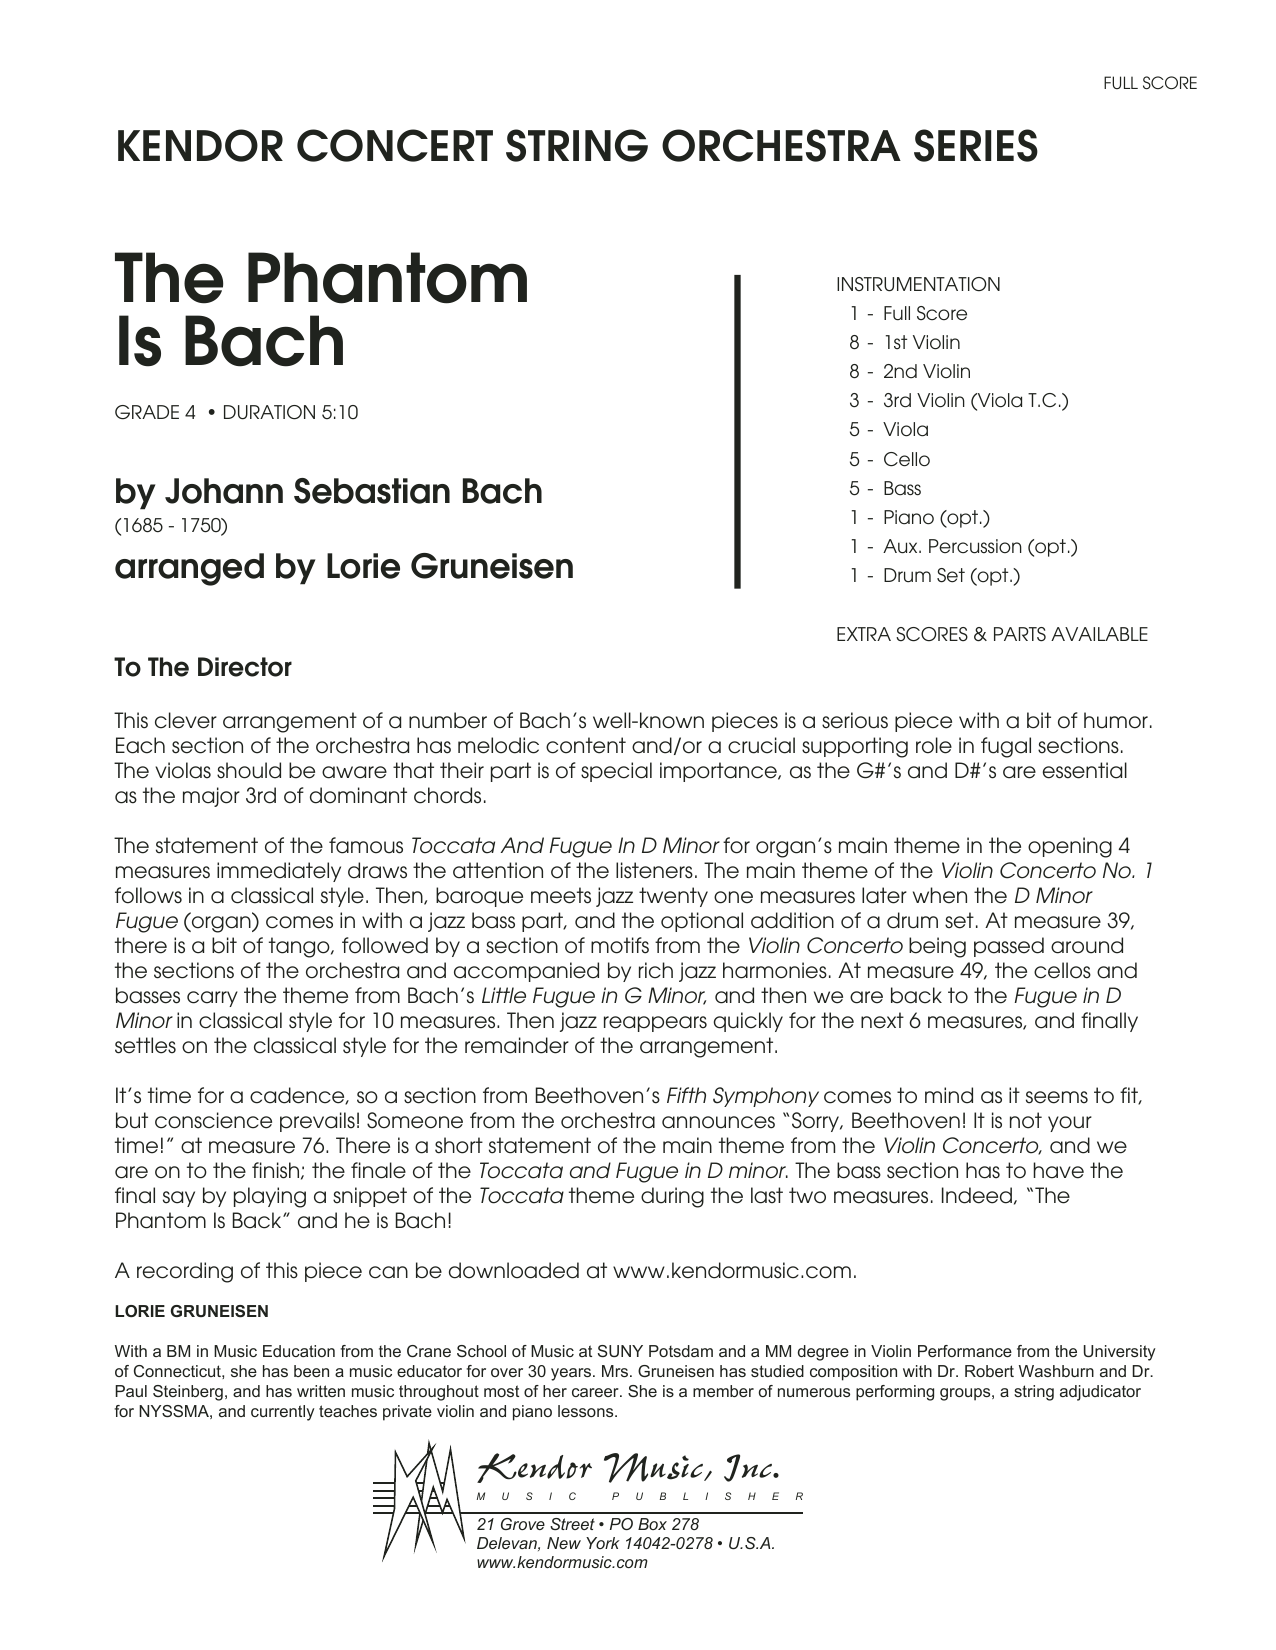 Lorie Gruneisen The Phantom Is Bach - Full Score sheet music notes and chords. Download Printable PDF.